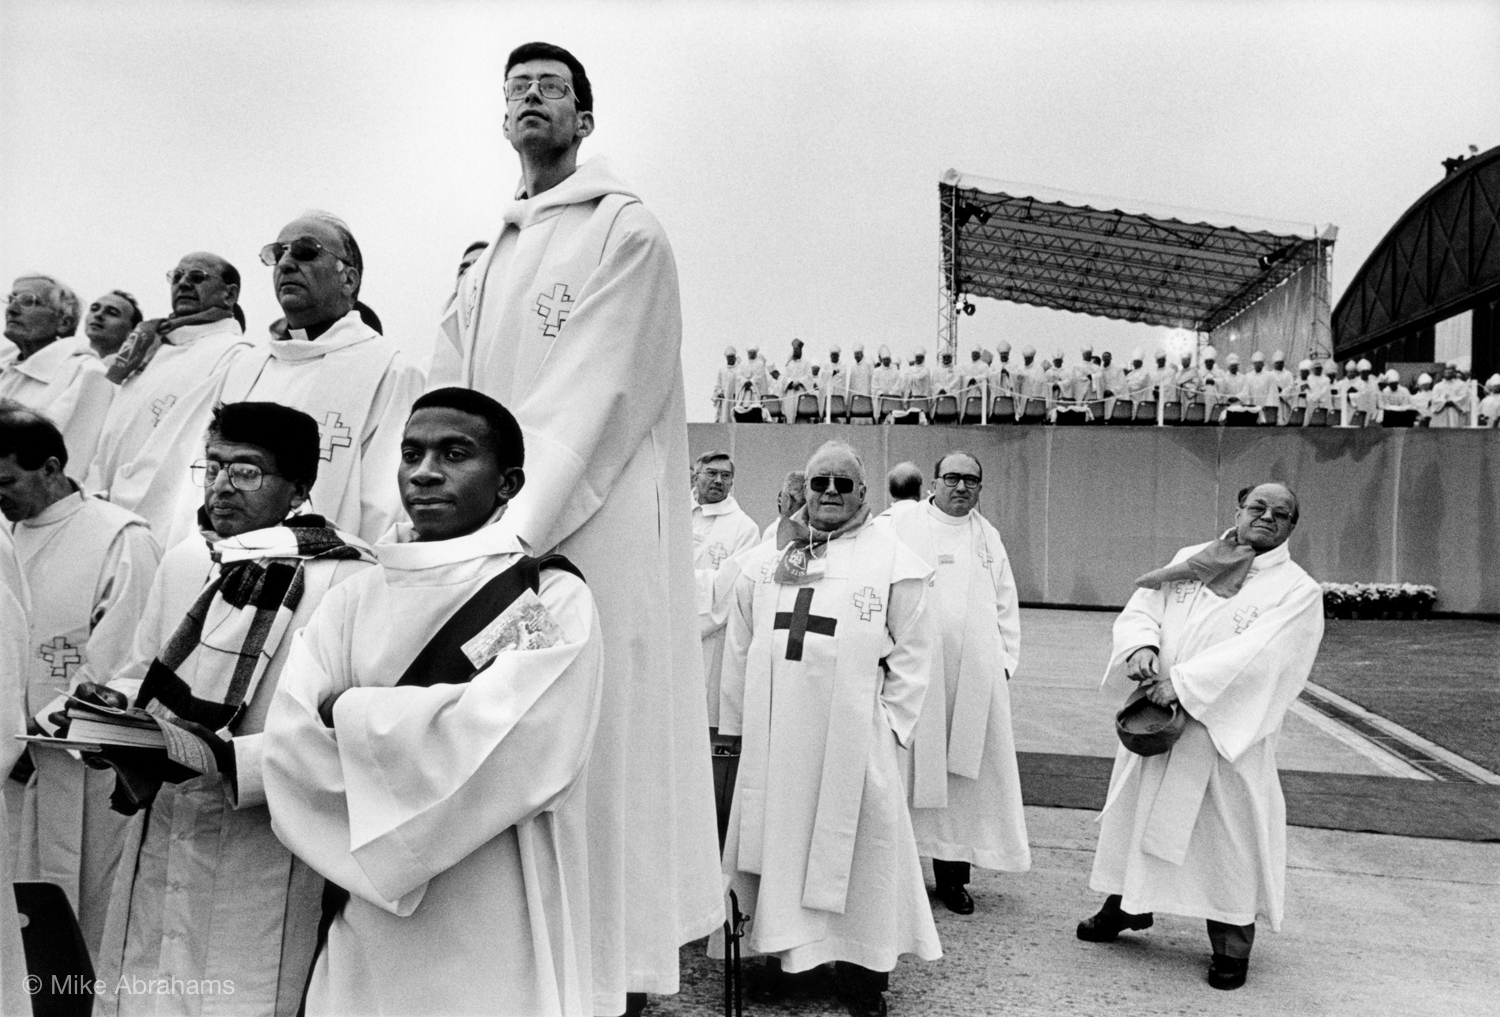 Catholic priests awaiting the arrival of the Pope. 200,000 people attend an open air mass at Reims. France 1996